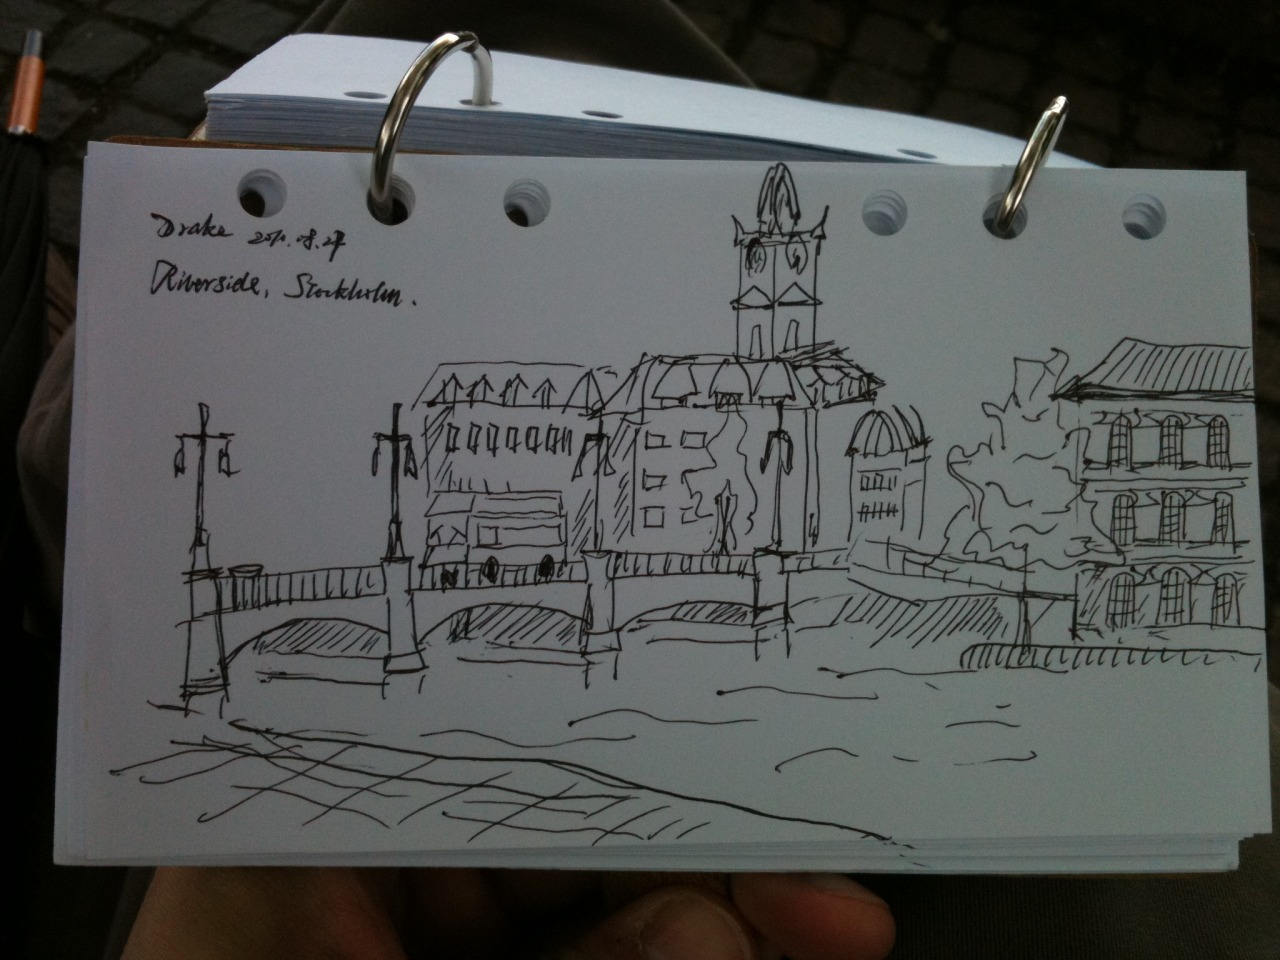 Sketched while attending ESC 2010, Stockholm, Sweden